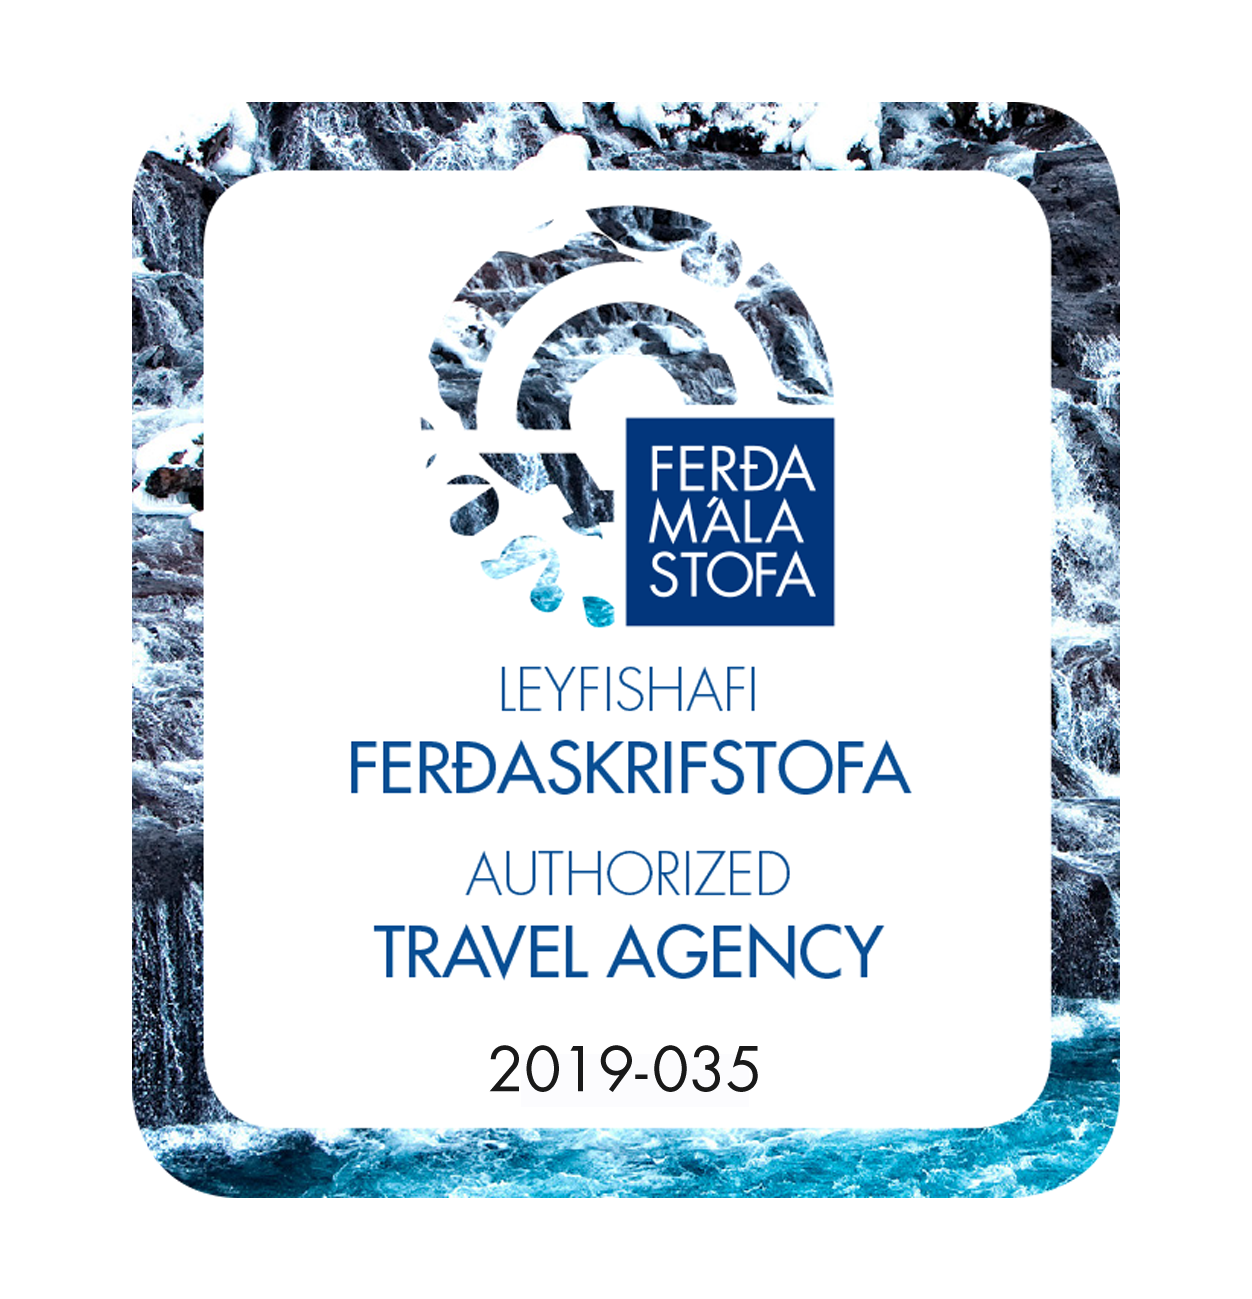 authorized-travel-agency-2019